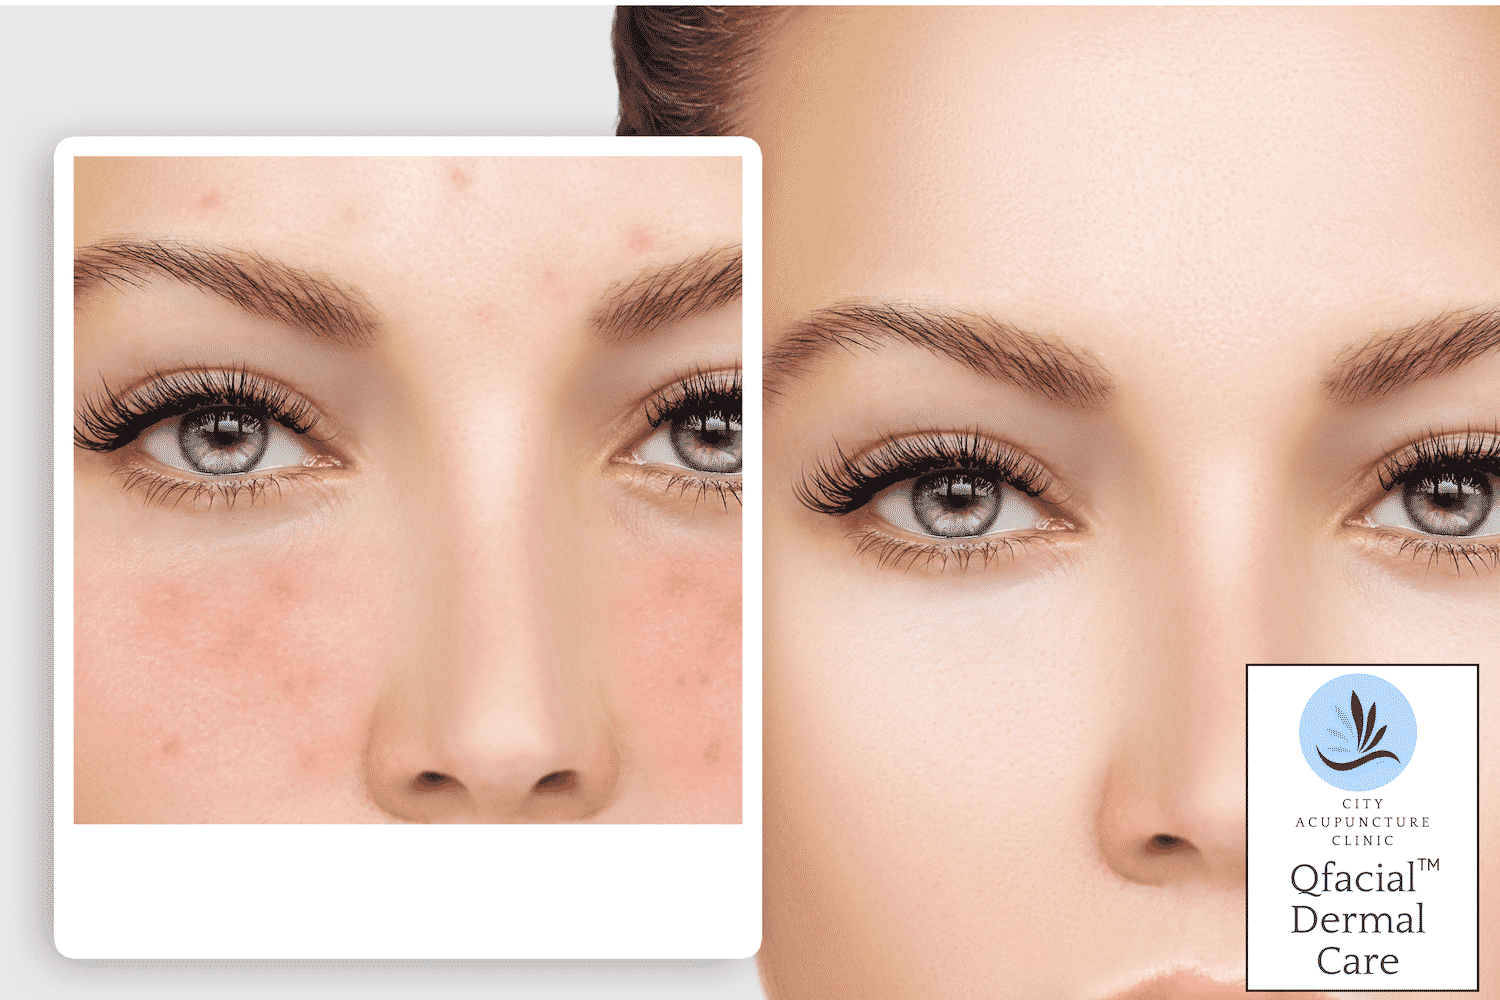 City Acupuncture Adelaide Clinic Facial compare with before and after acupuncture treatment